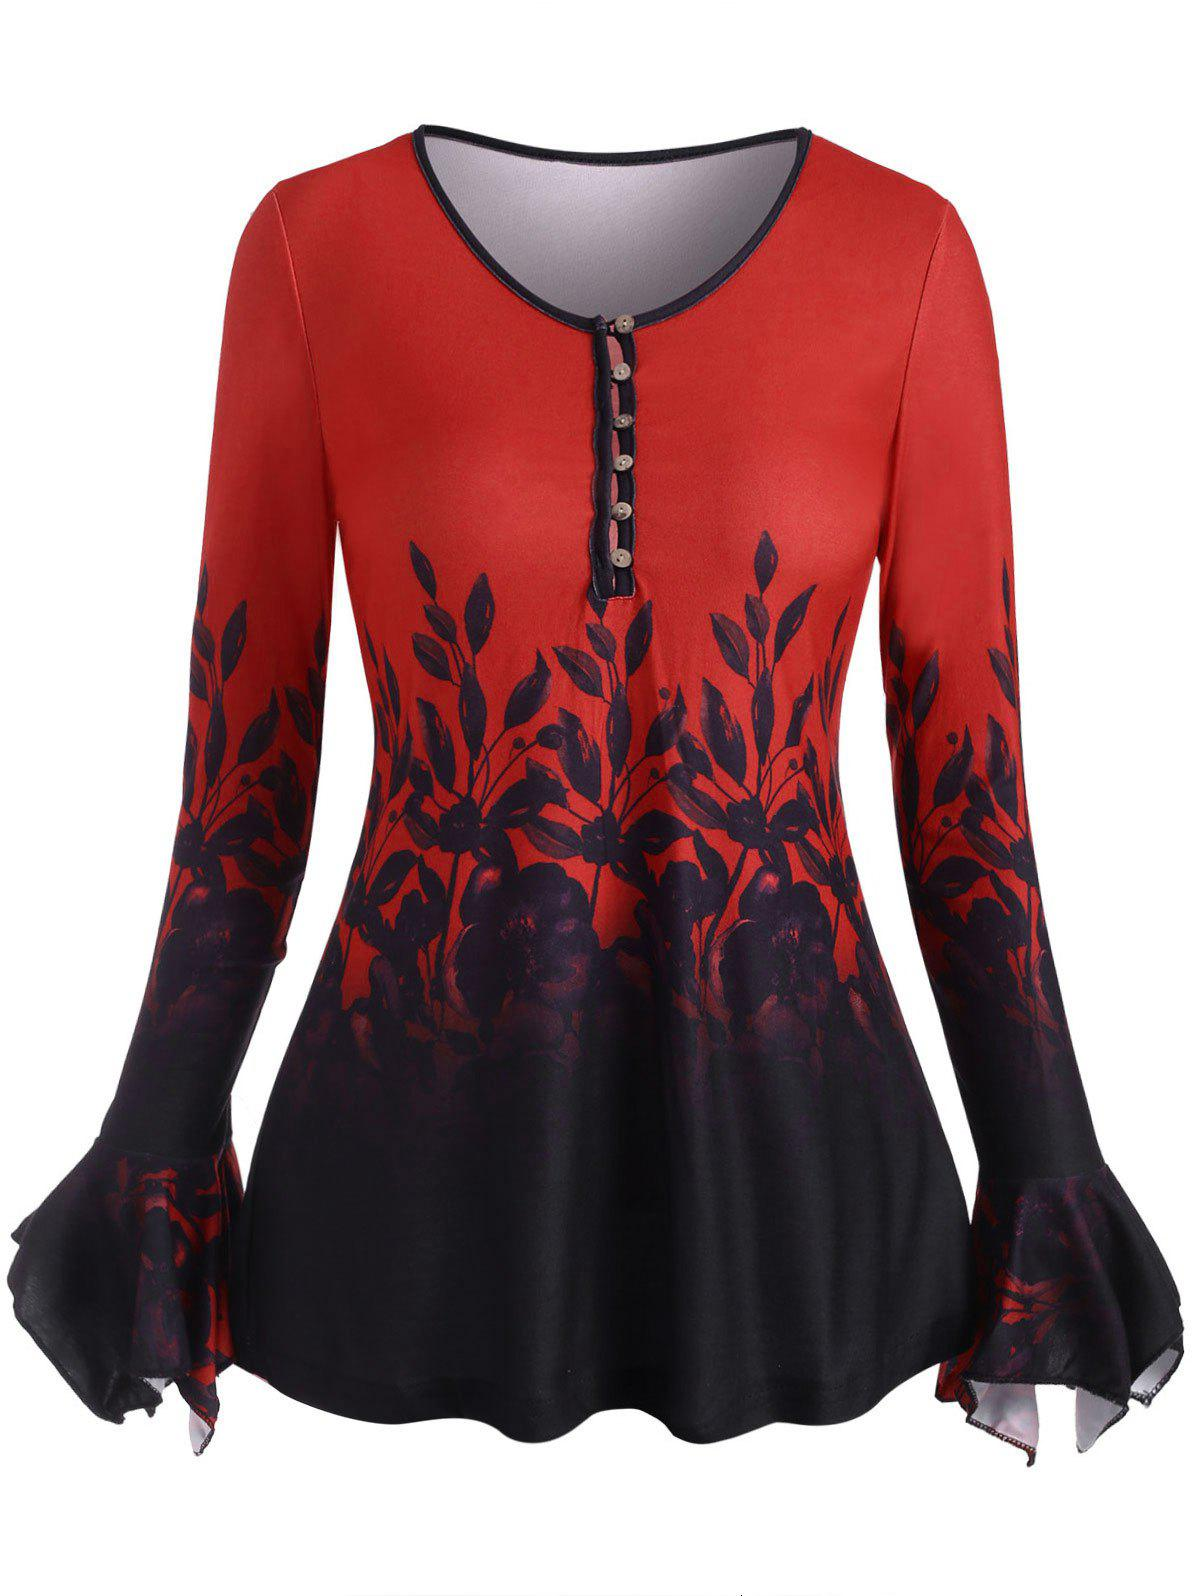 Poet Sleeve Flower Pattern Button Loop Top - RED M